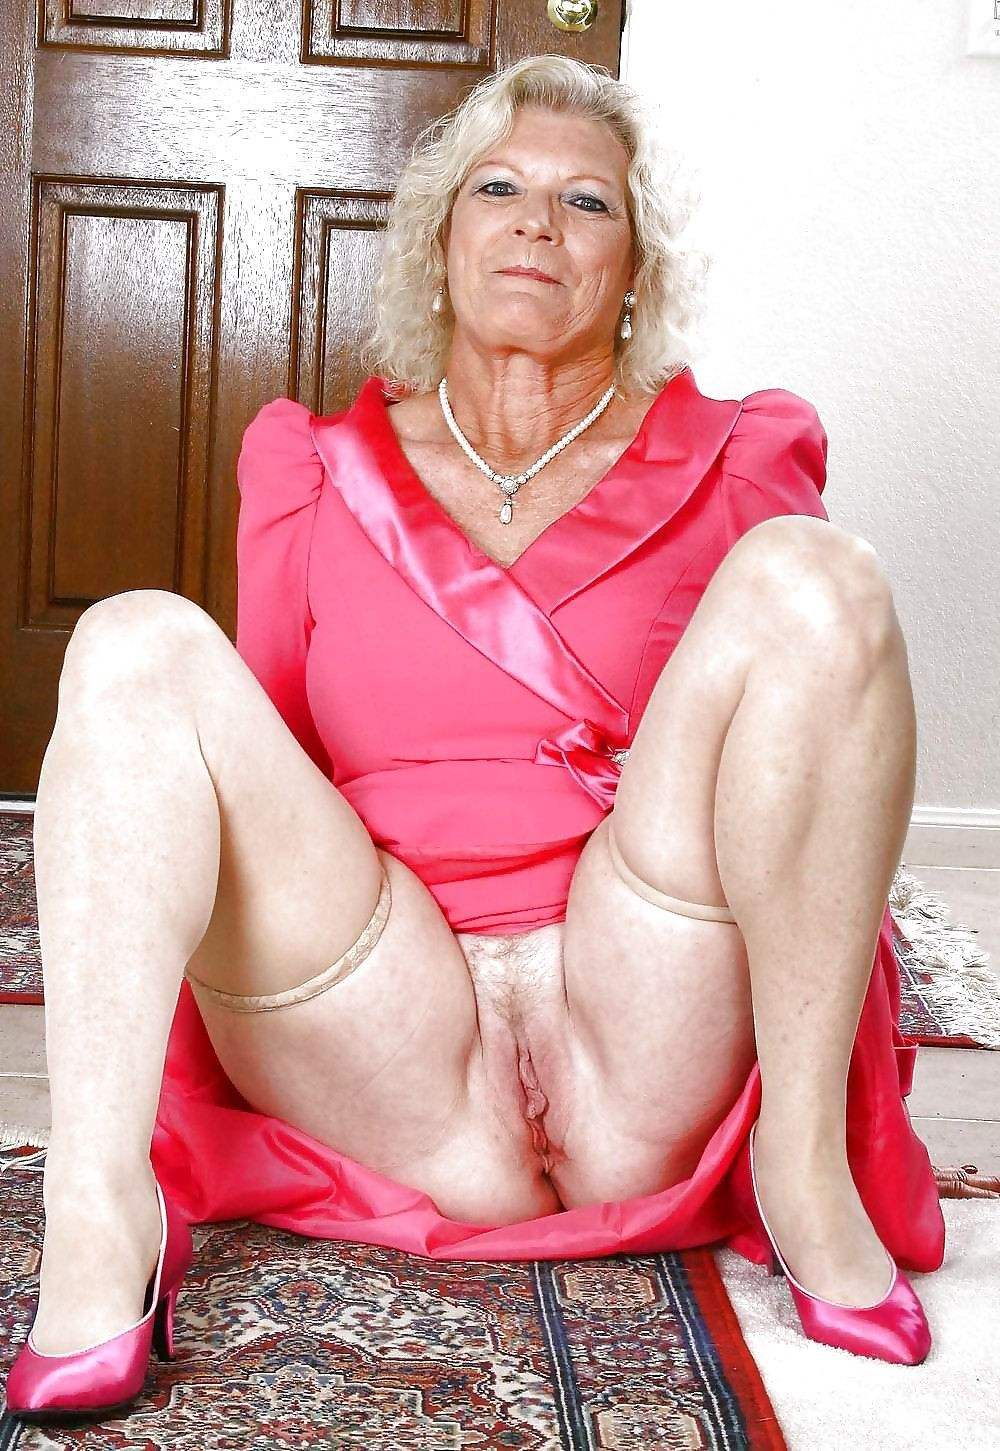 Old Granny Ass Porn - Adult granny ass . Adult archive.